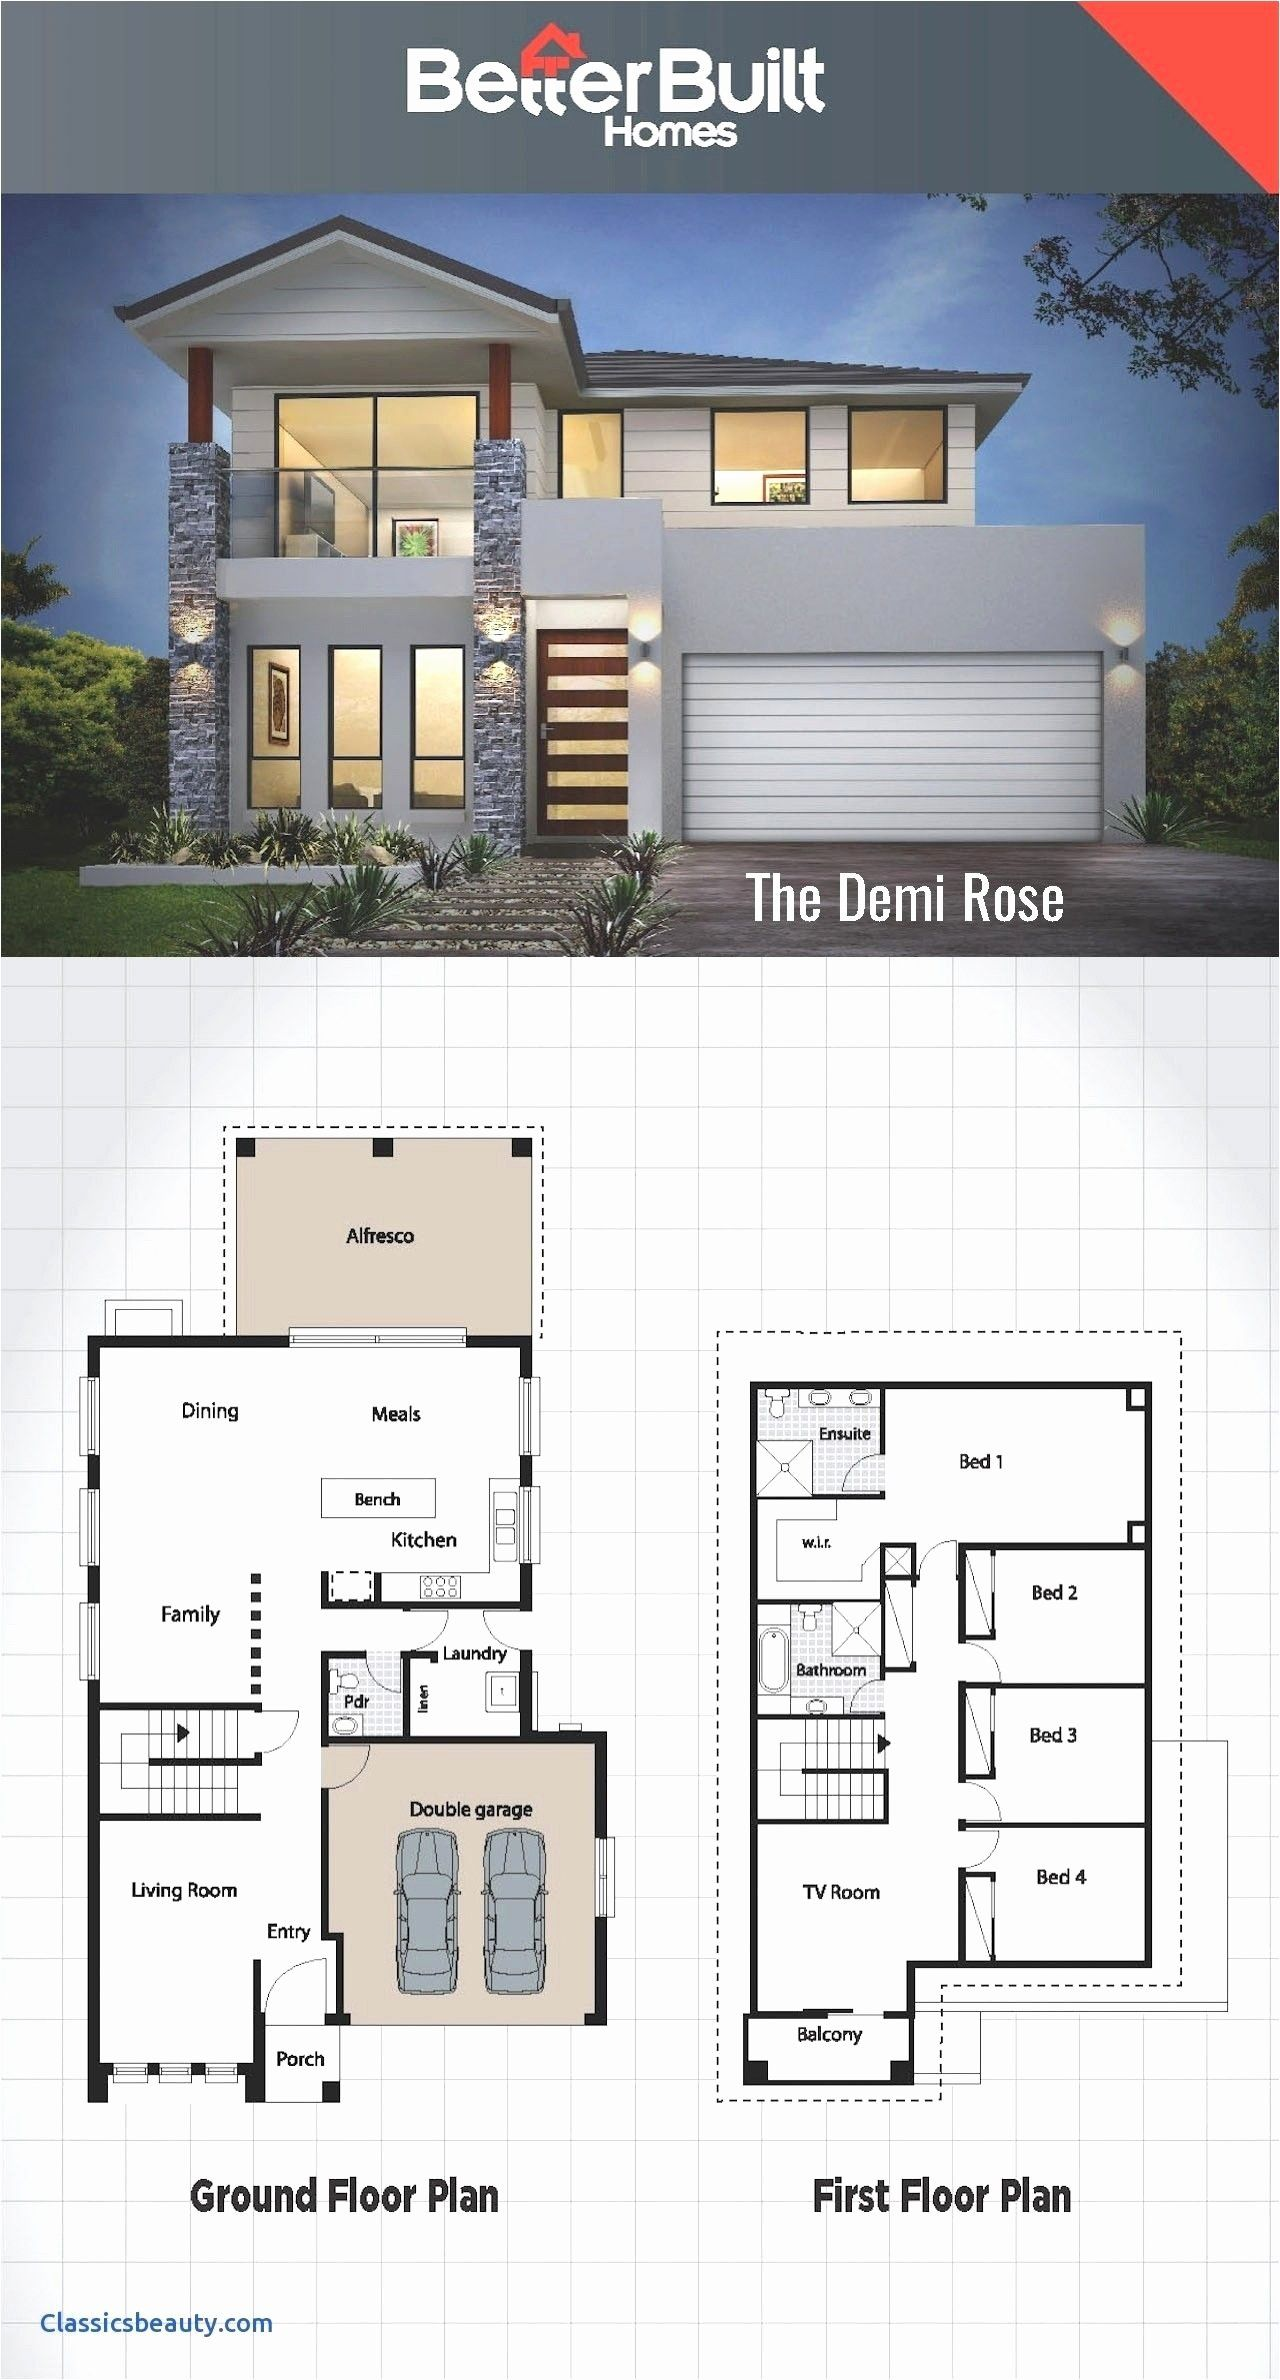 Modern House Architecture In The Philippines Awesome House Plans Under 200k To Build Philippin In 2020 Modern House Floor Plans House Blueprints Modern Farmhouse Plans